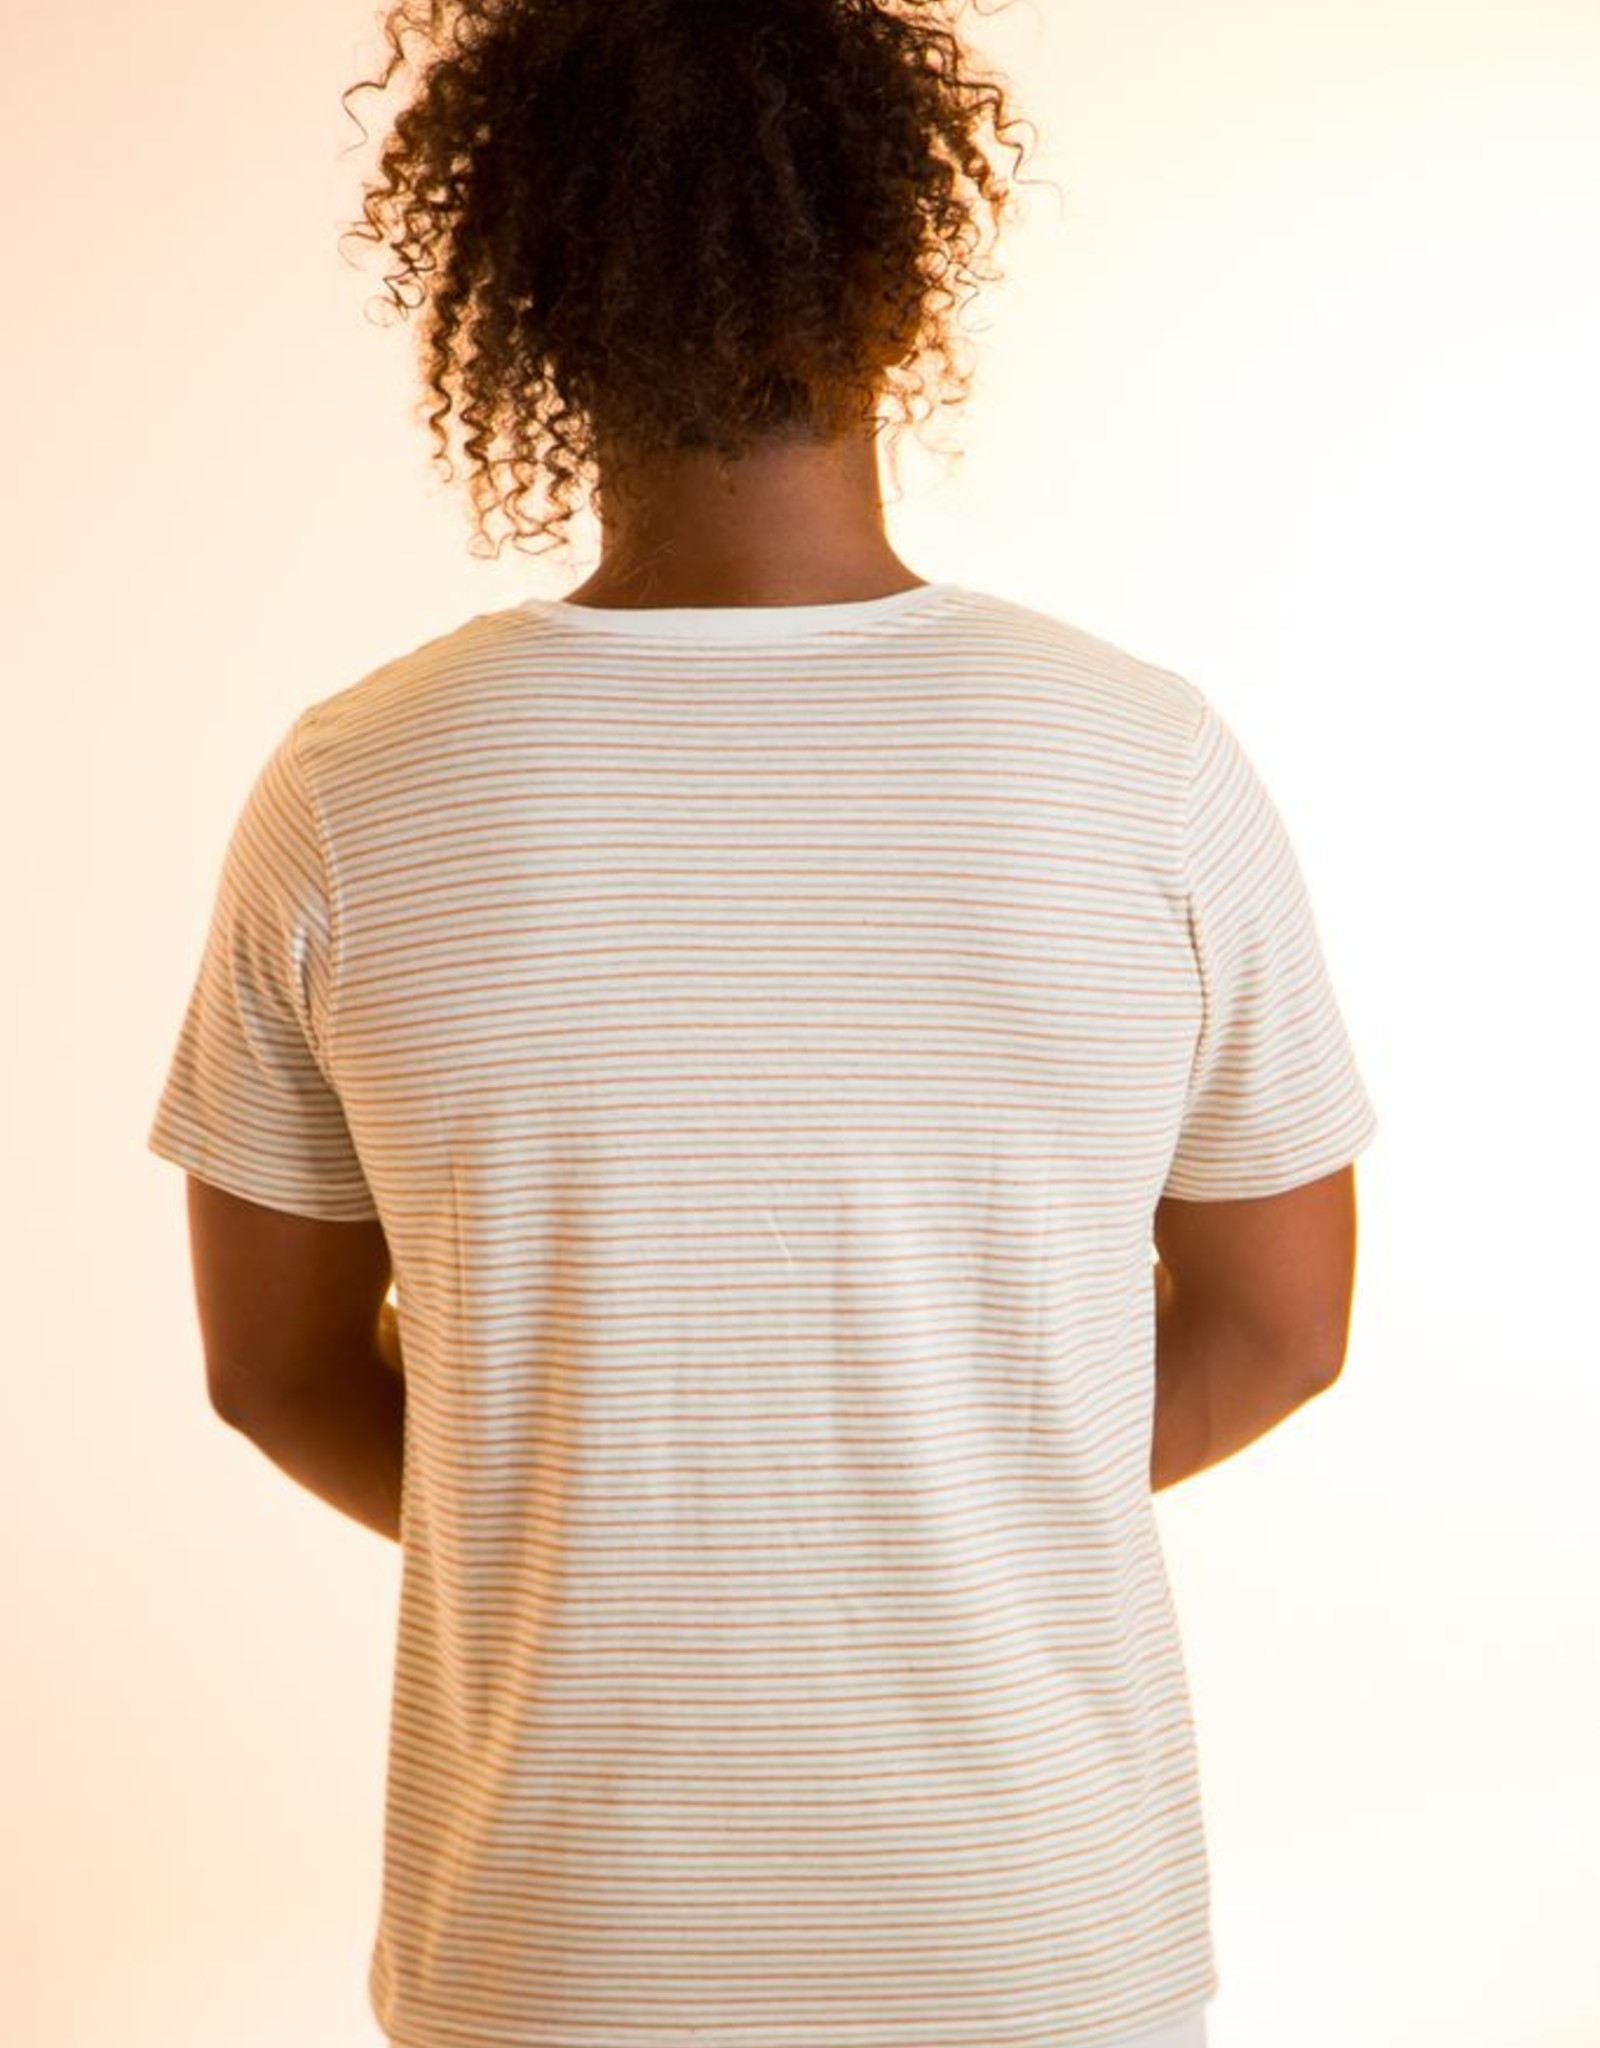 Striped short sleeves shirt for man